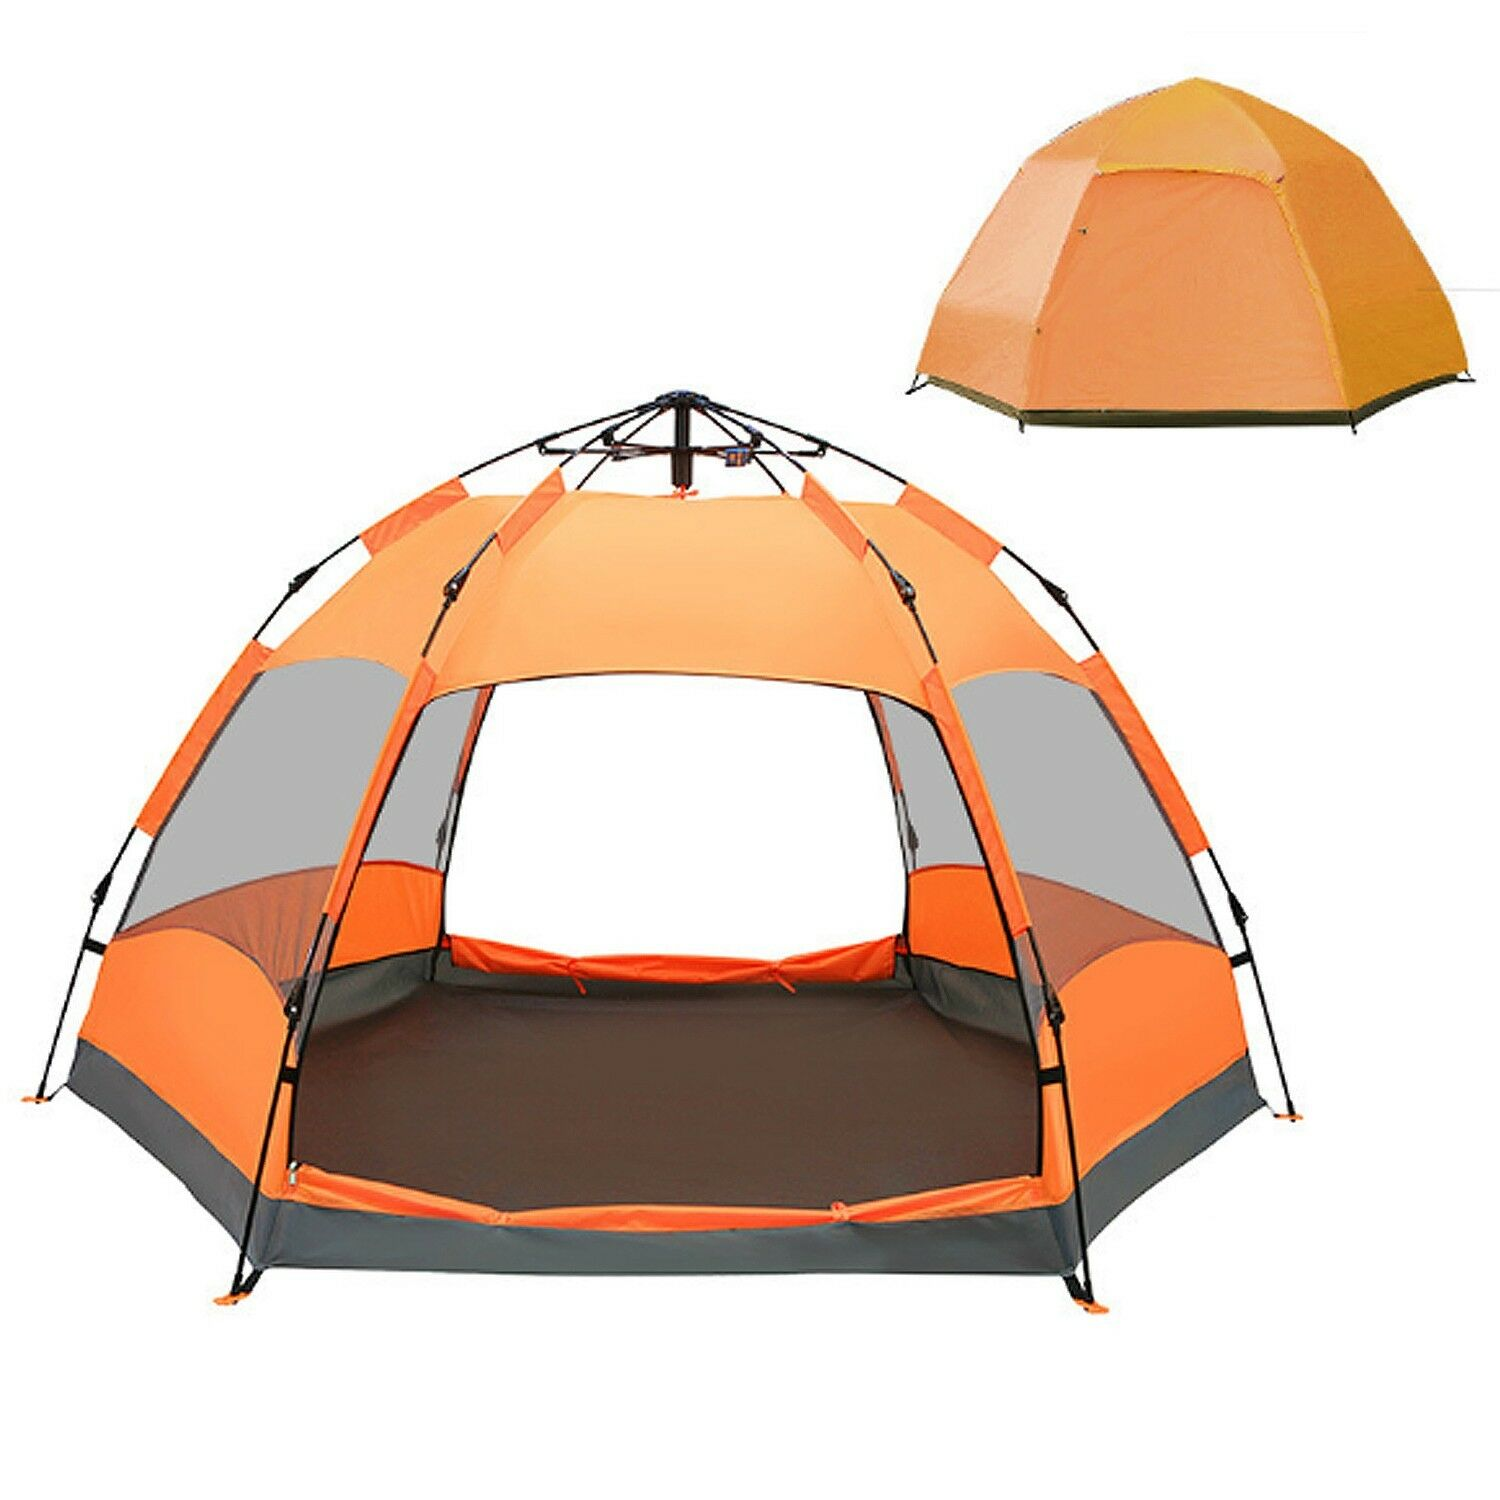 Travel Large Camping Beach Automatic Beach Camping Dome Skin Big Tent 9788b9